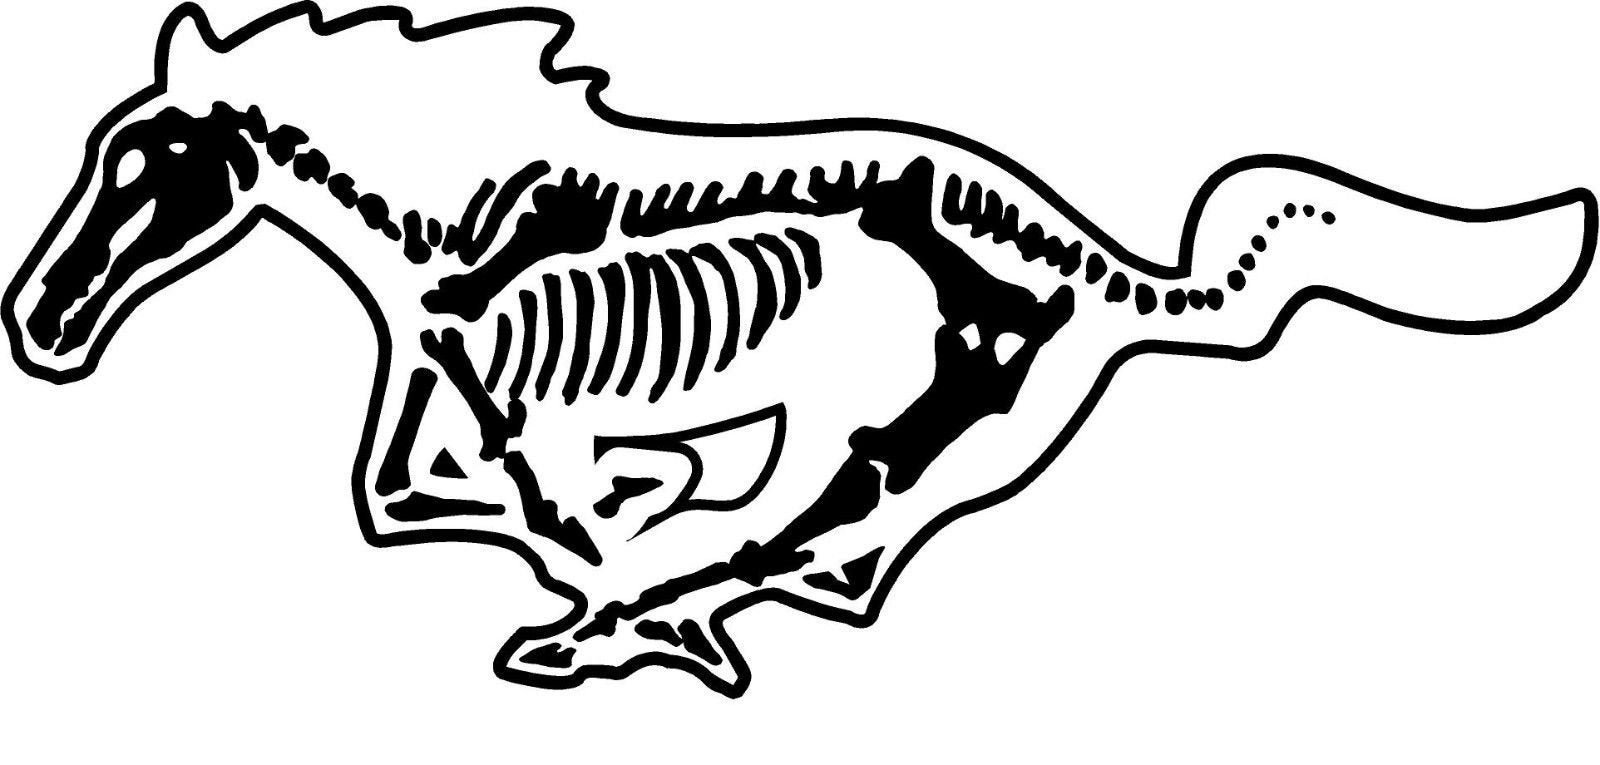 ford mustang skeleton decal fox body 5 shelby cobra sticker etsy 05 -09 Mustang 50